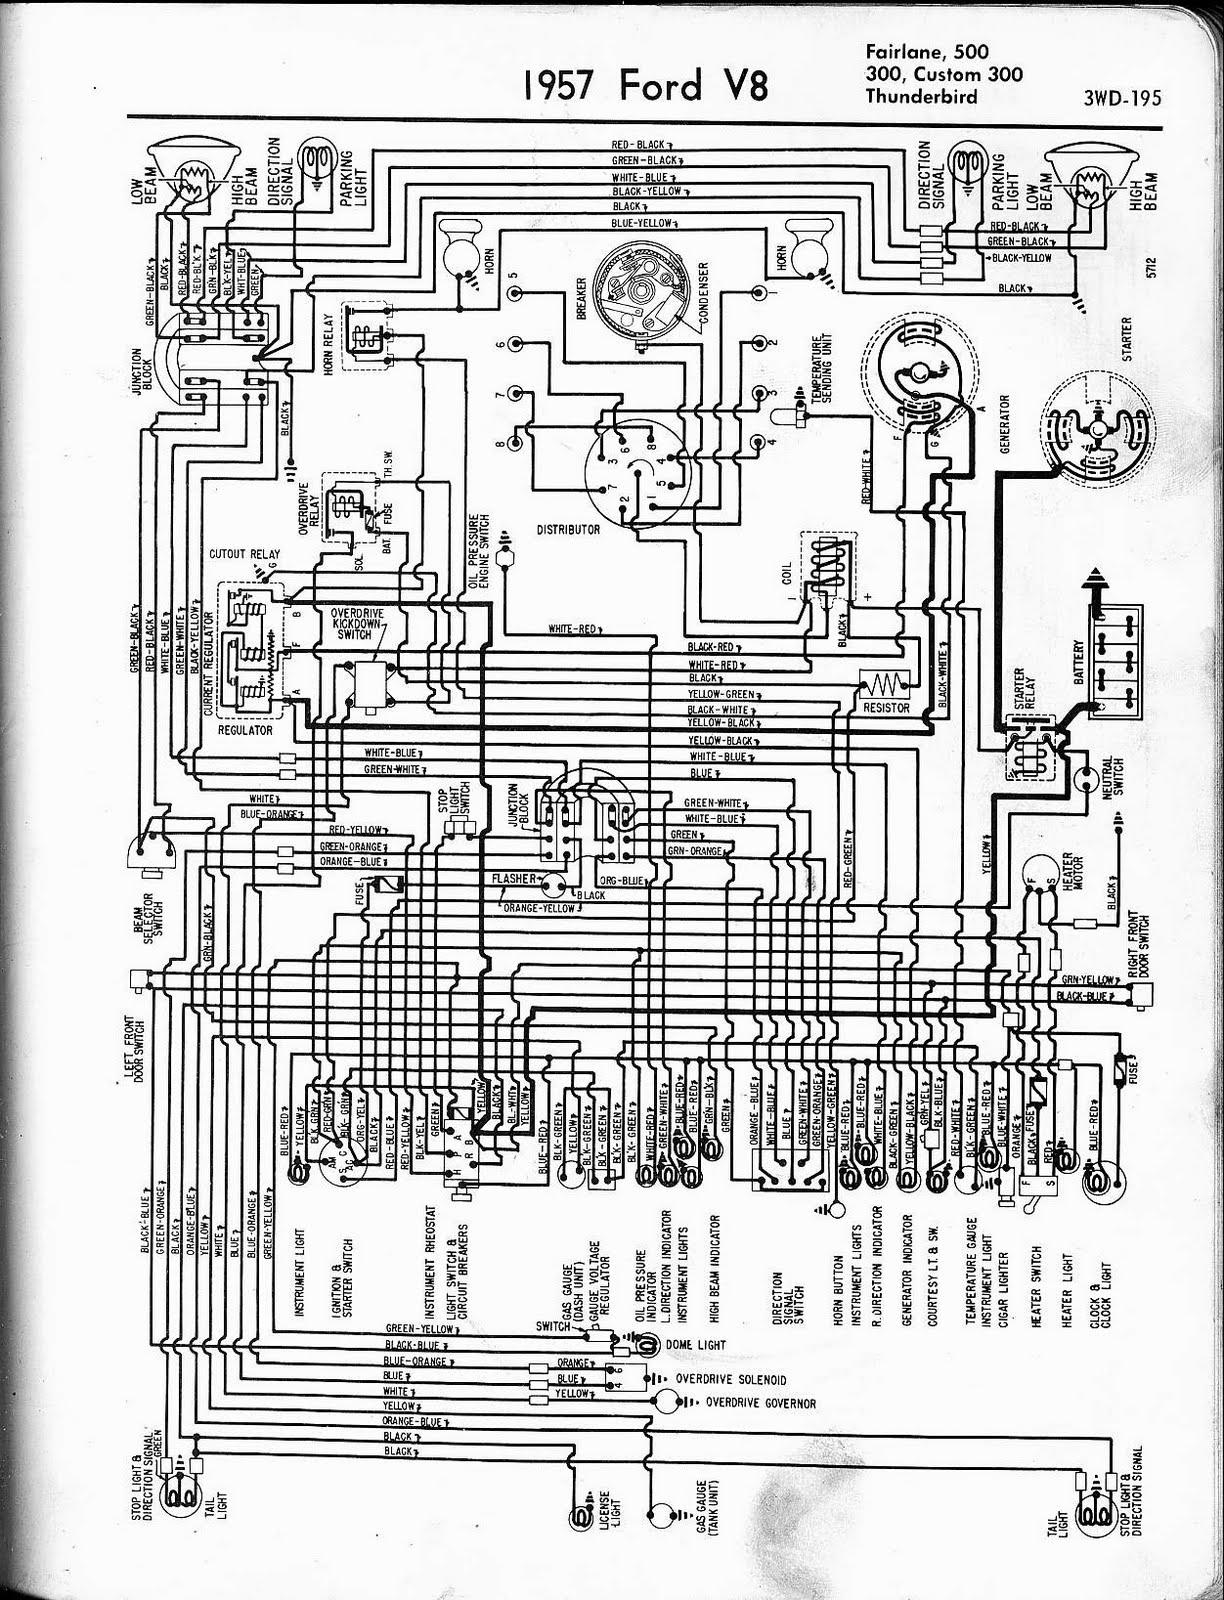 Mercury Gauge Wiring Diagram Simple Guide About Outboard Internal Harness Free Auto 1957 Ford V8 Fairlane Custom300